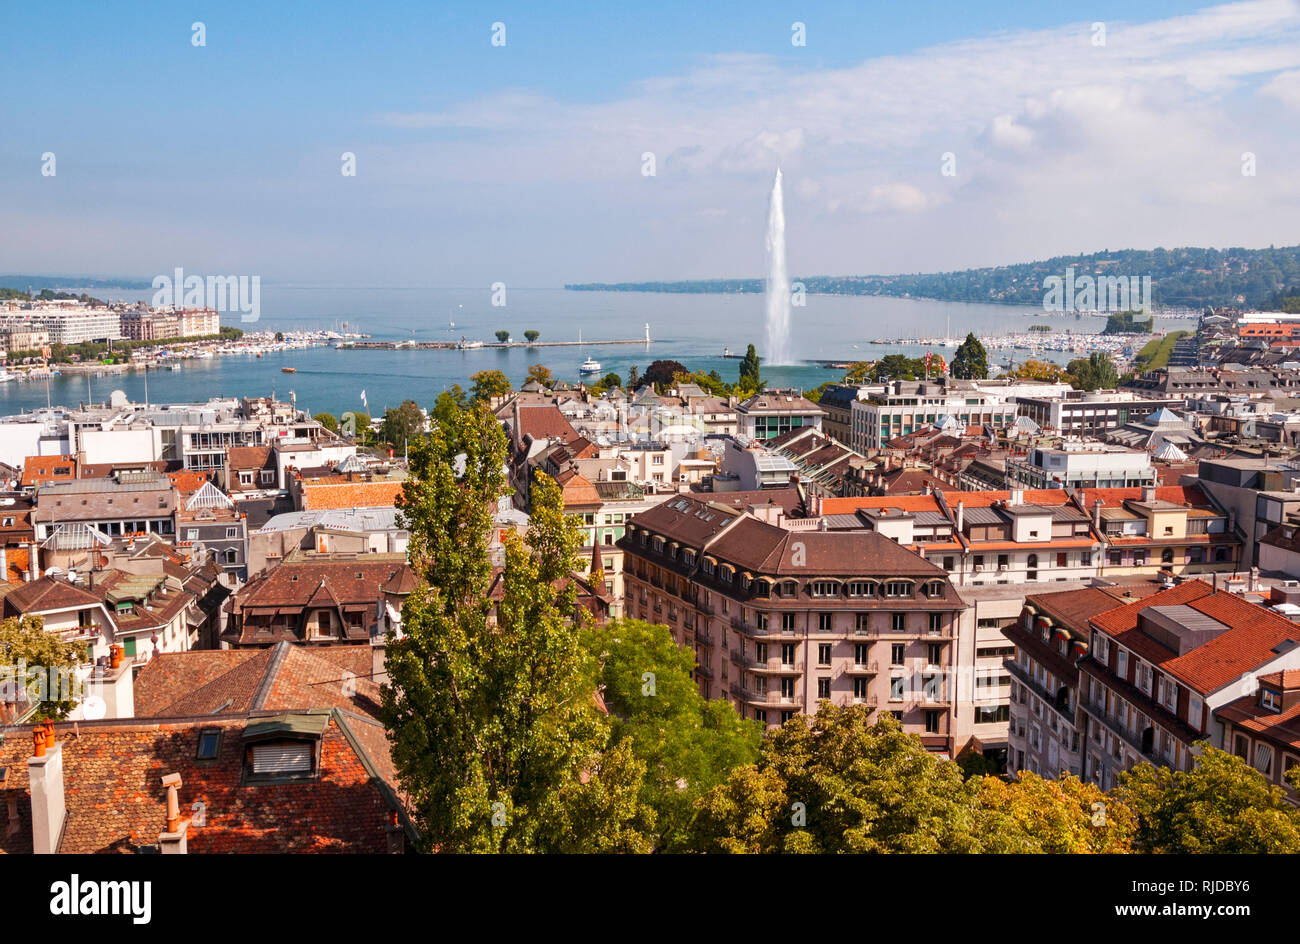 View across Geneva from St Peter's Cathedral tower, Switzerland - Stock Image